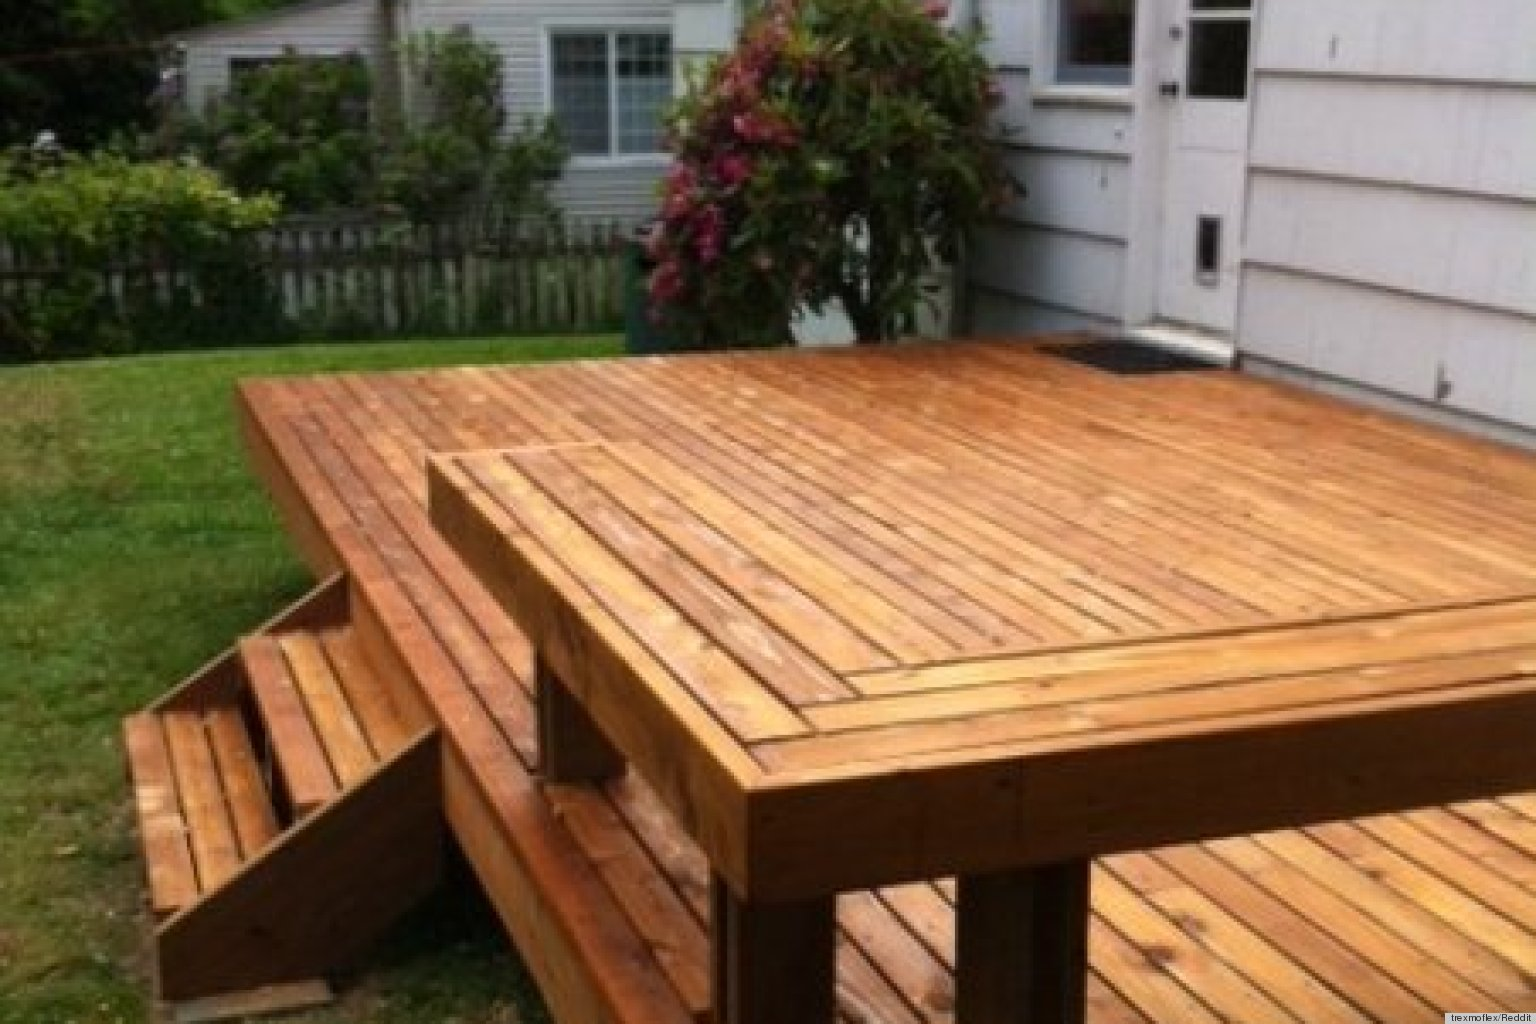 Building a deck is how one couple initiated their new home Building a deck